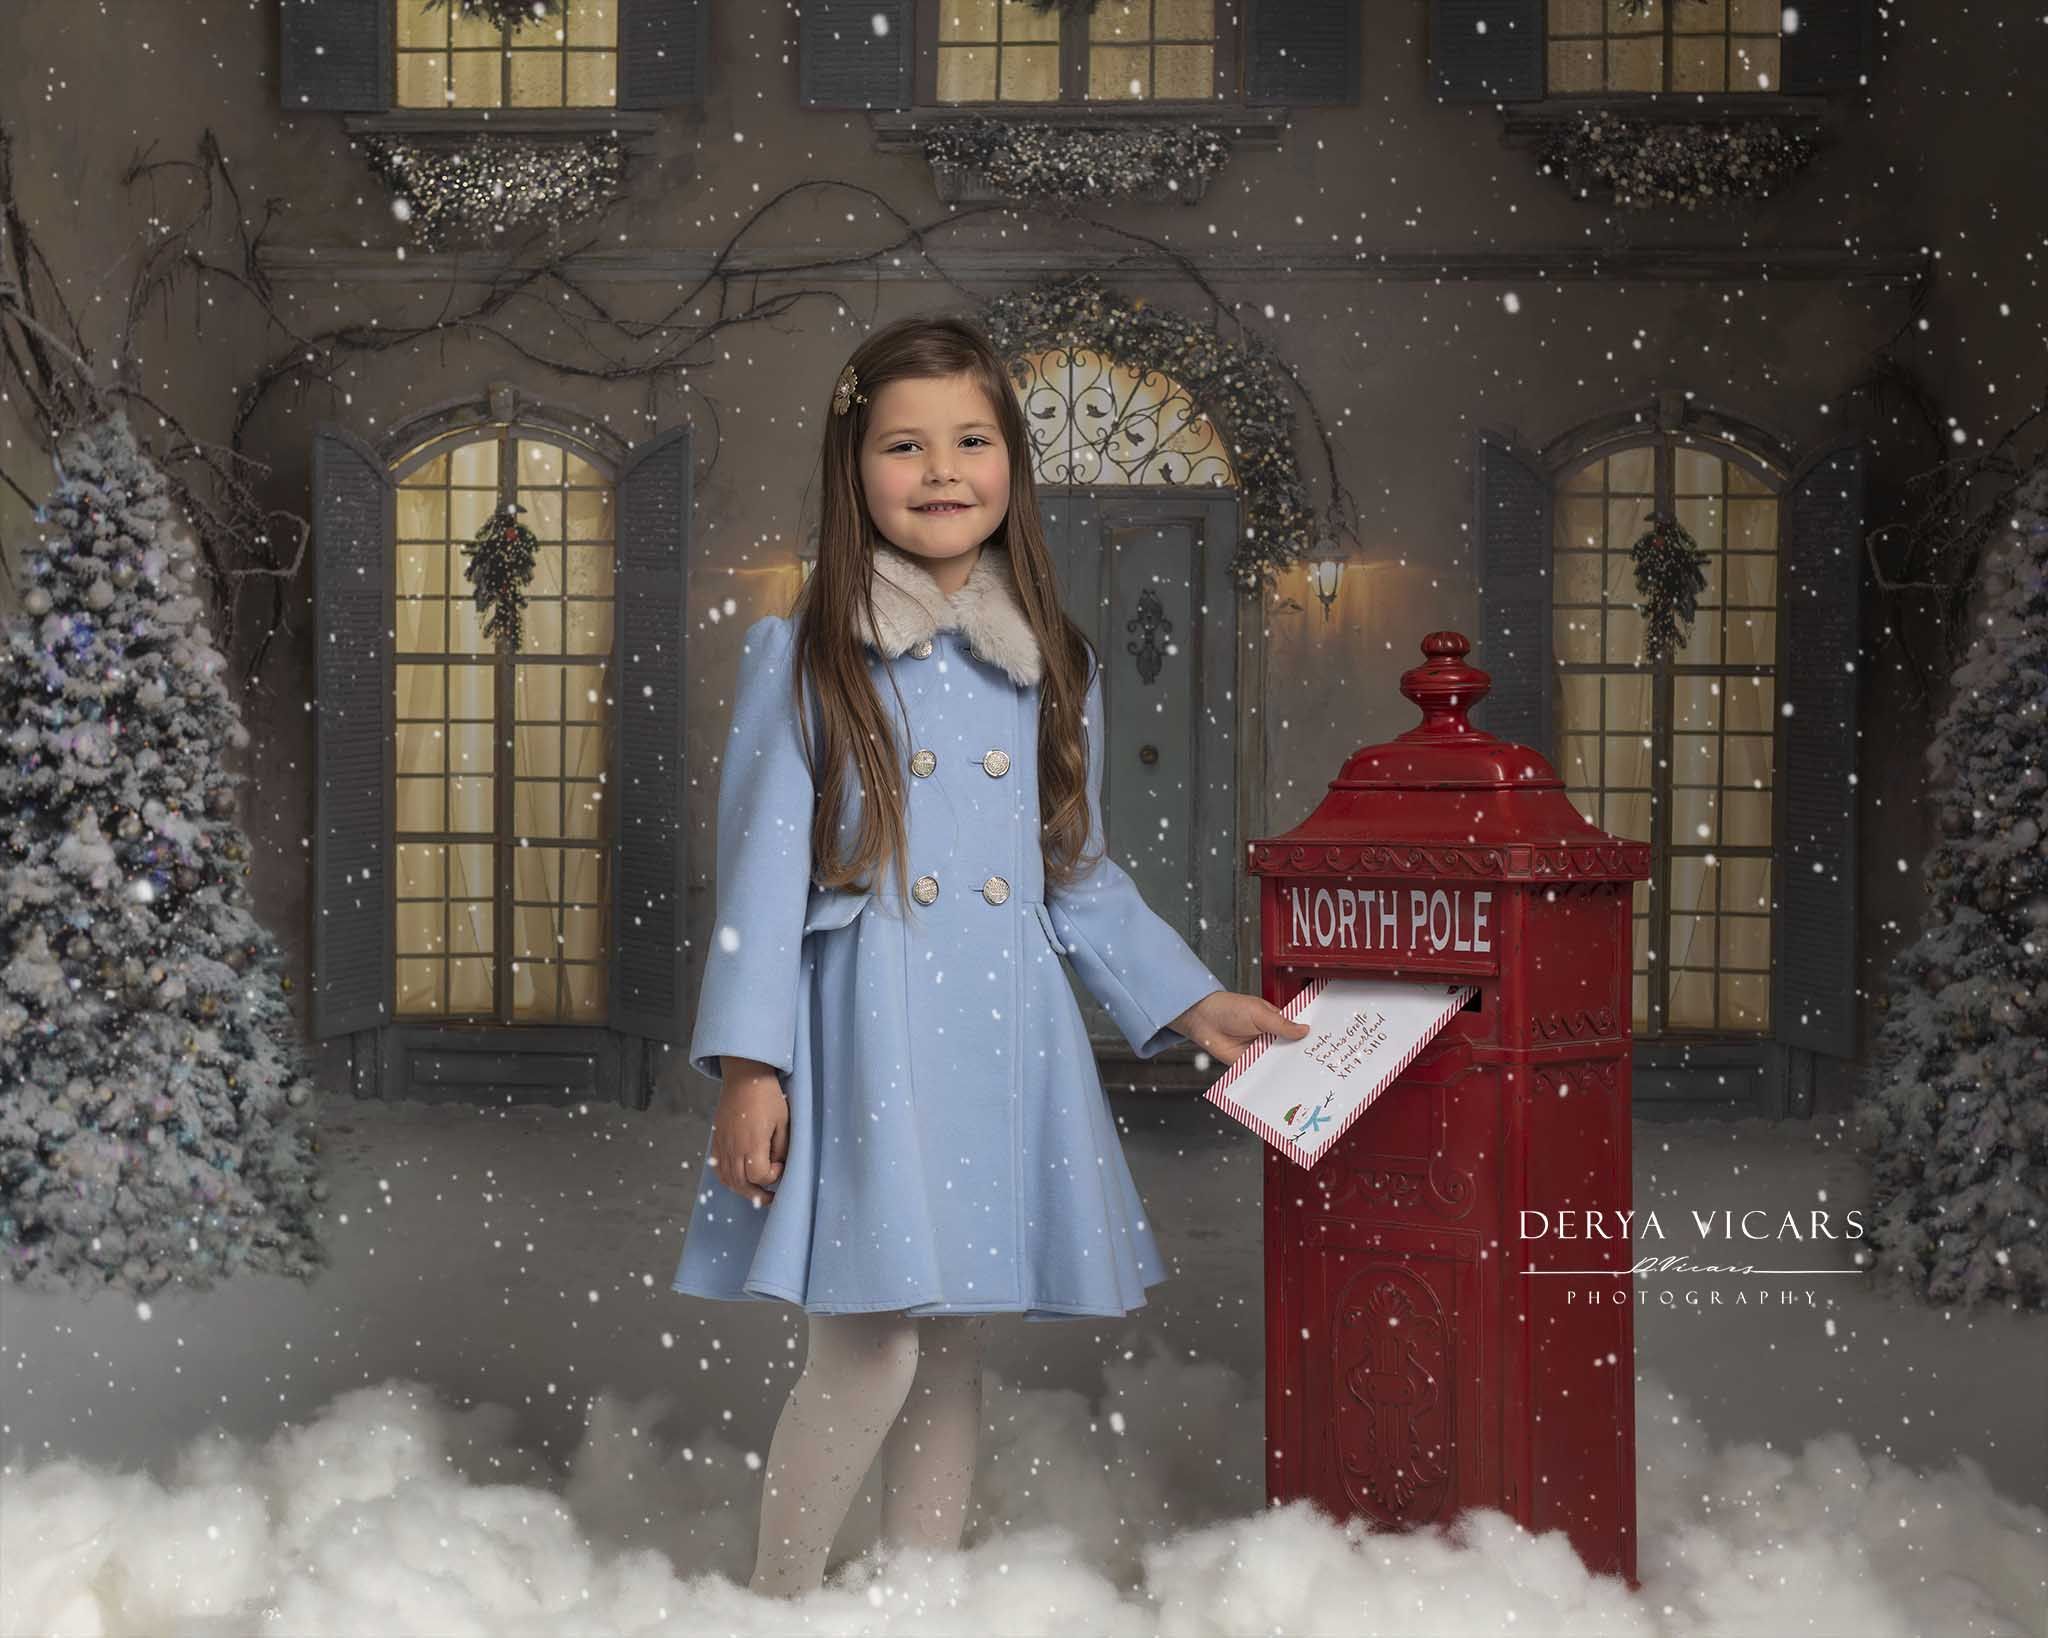 Wirral Winter Wonderland Christmas Photo Shoot in Wirral, Merseyside